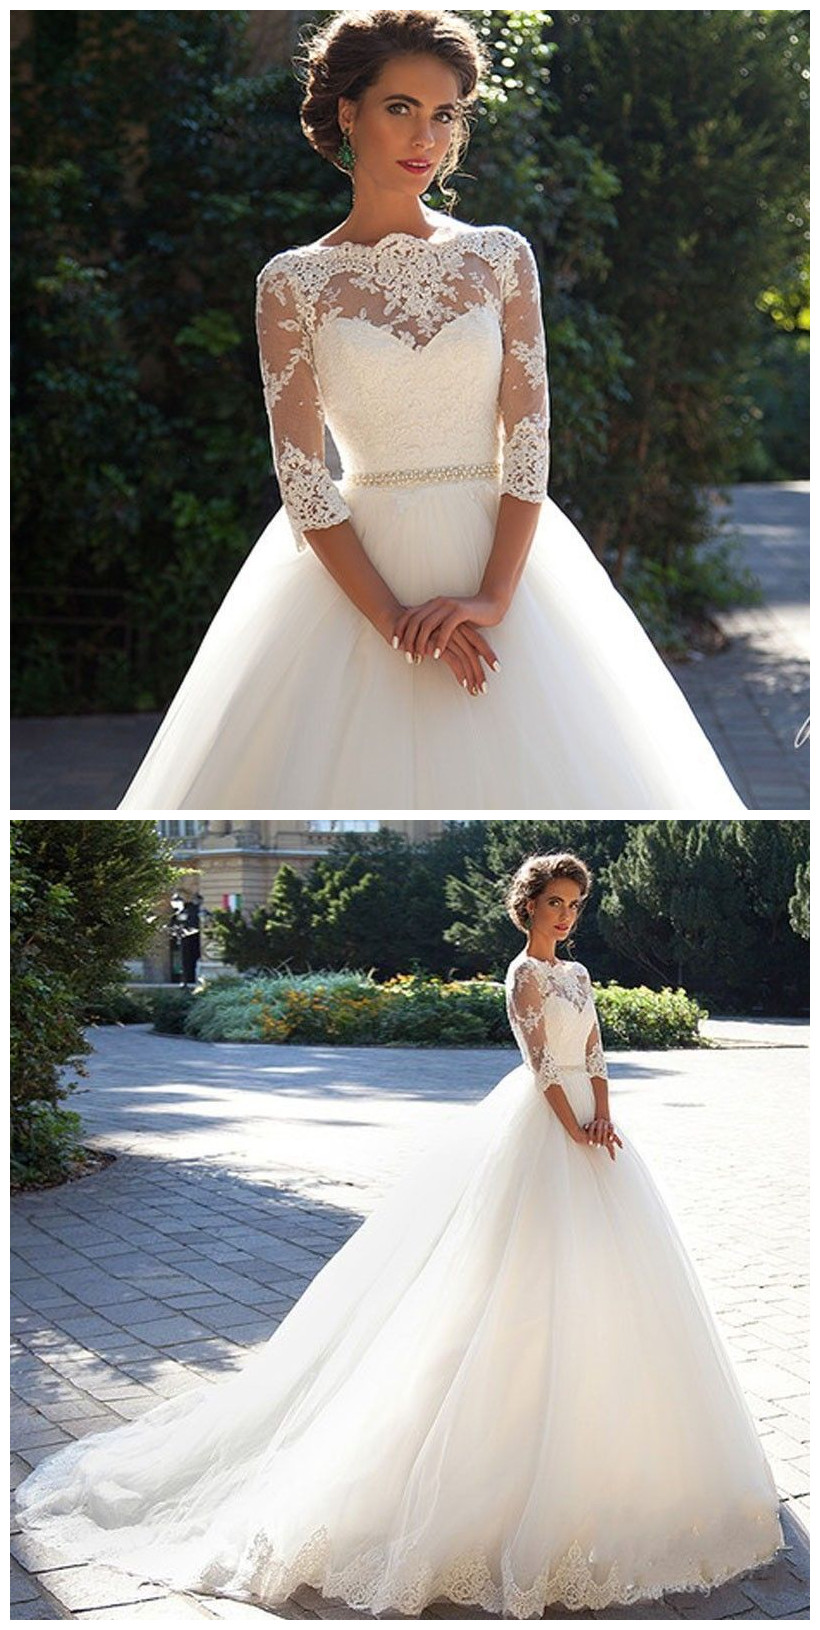 New White/Ivory Wedding Dresse Lace Bridal Gown wedding gowns ...